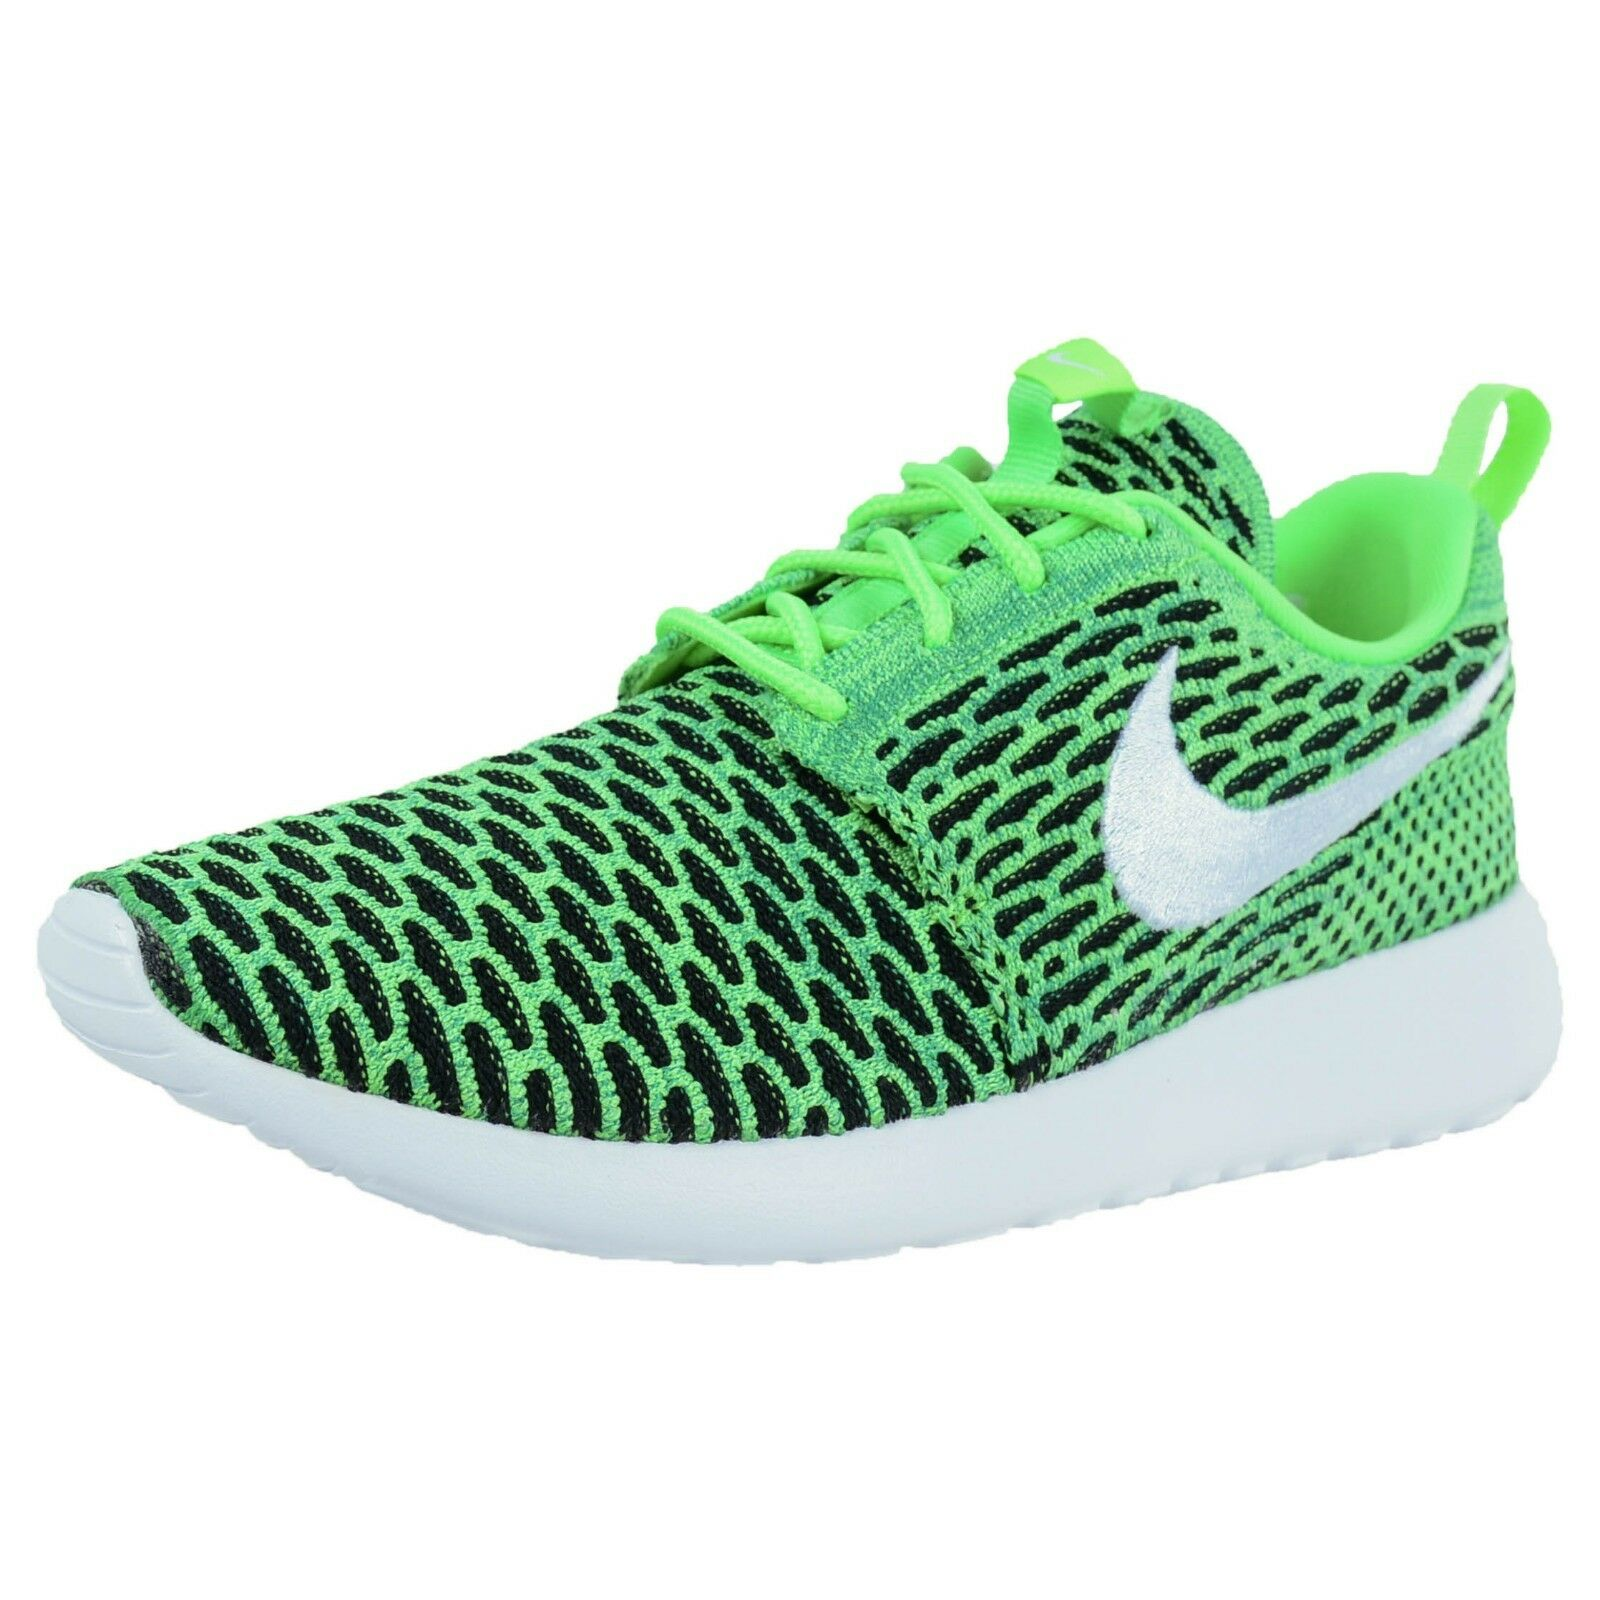 NIKE WOMENS ROSHE ONE FLYKNIT CASUAL SNEAKERS VOLTAGE GREEN WHITE 704927 305 Cheap women's shoes women's shoes